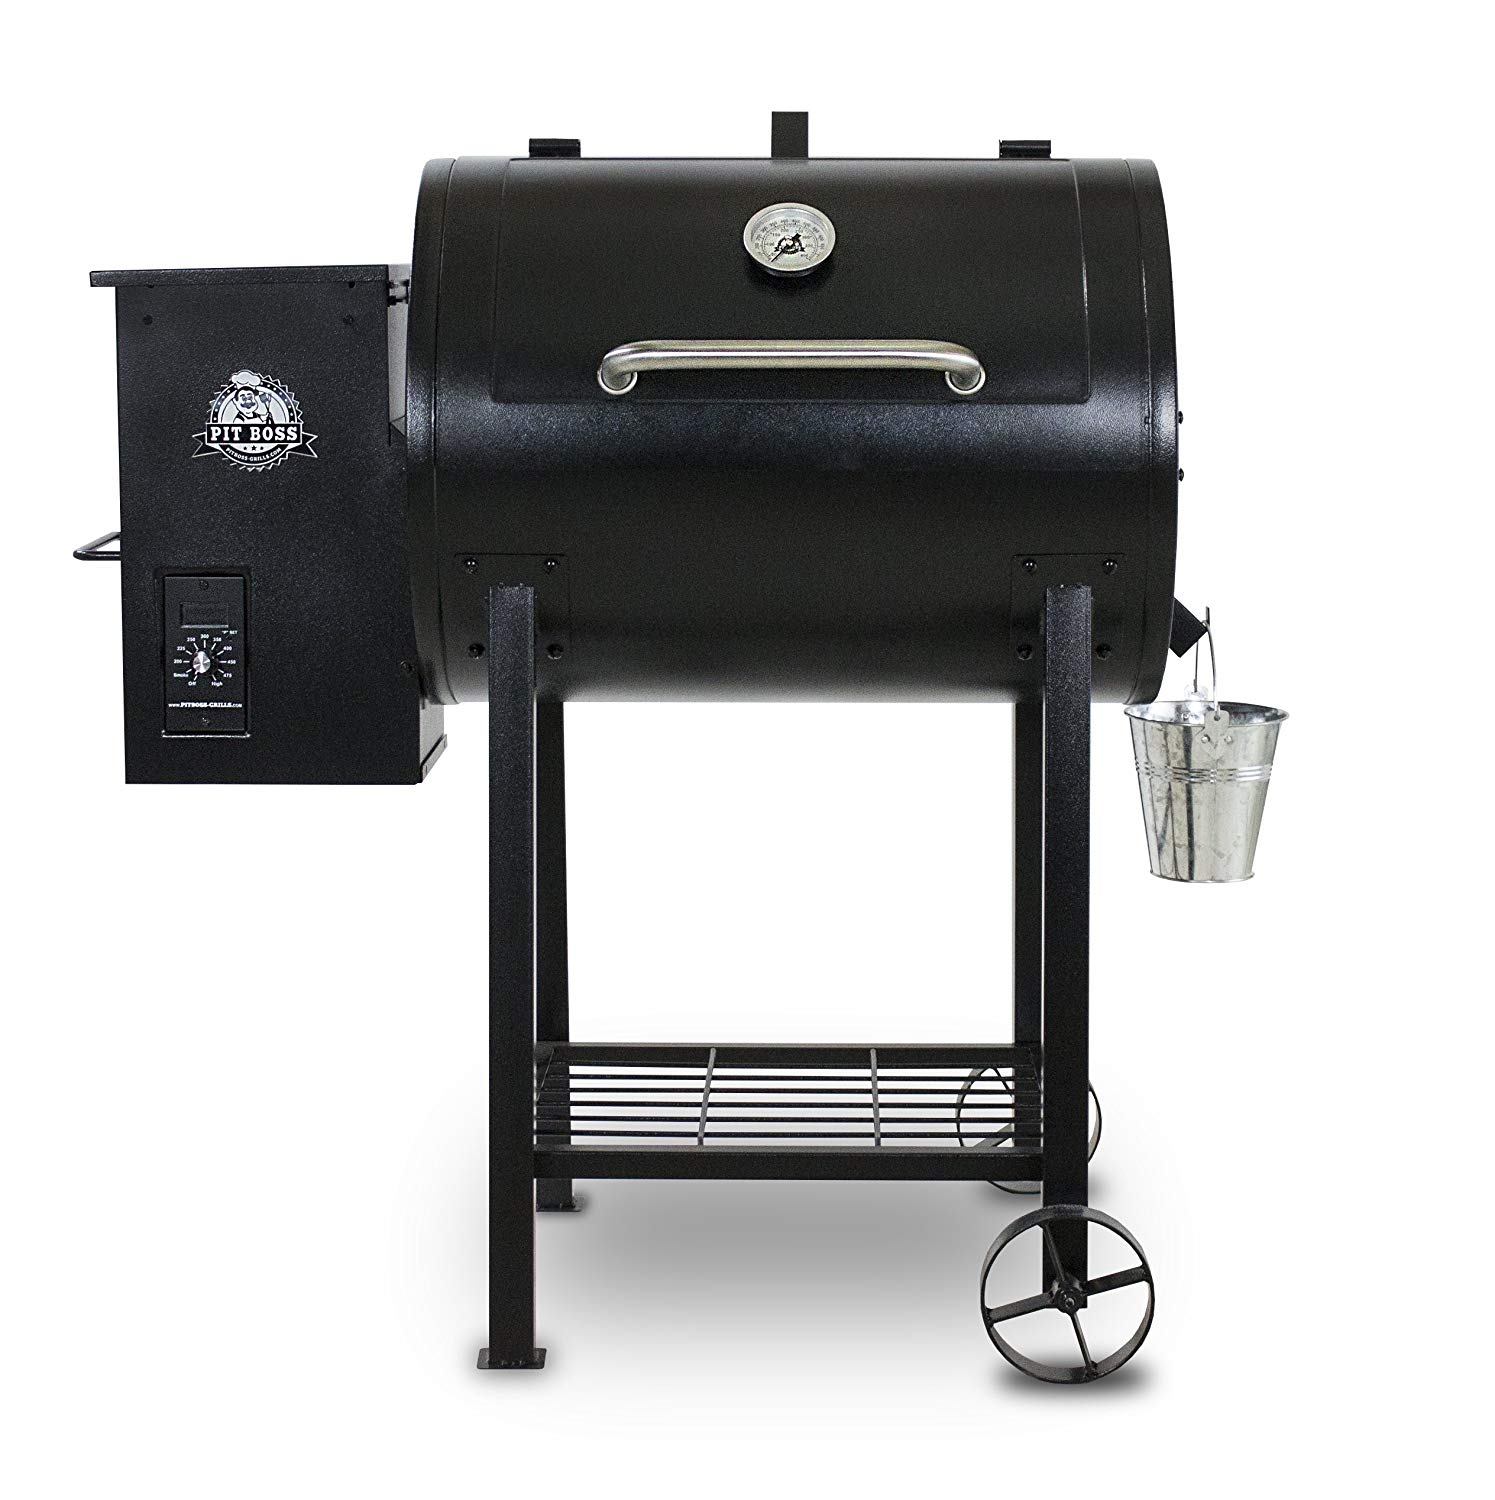 Pit Boss 700FB Pellet Grill Review